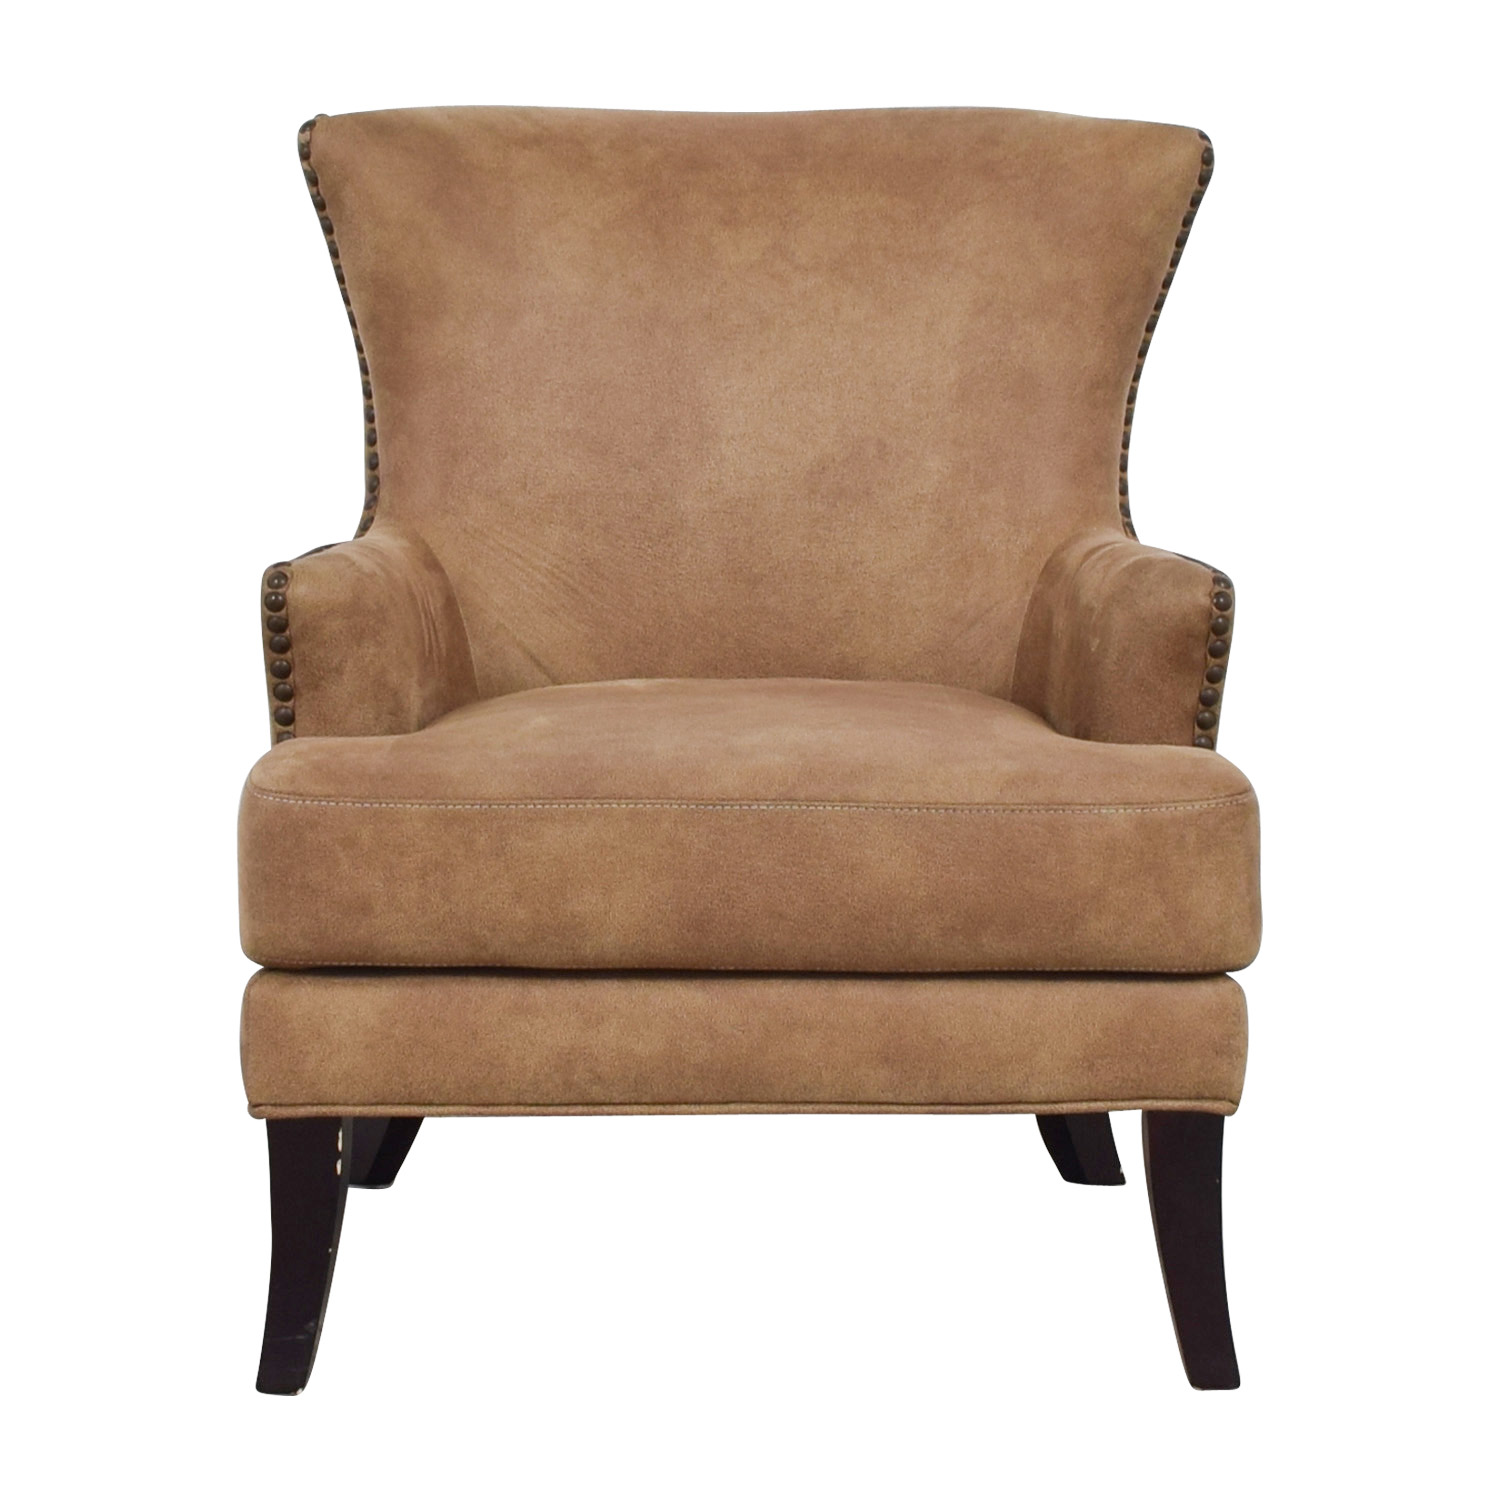 Joss & Main Nola Brown Nailhead Arm Chair Joss & Main